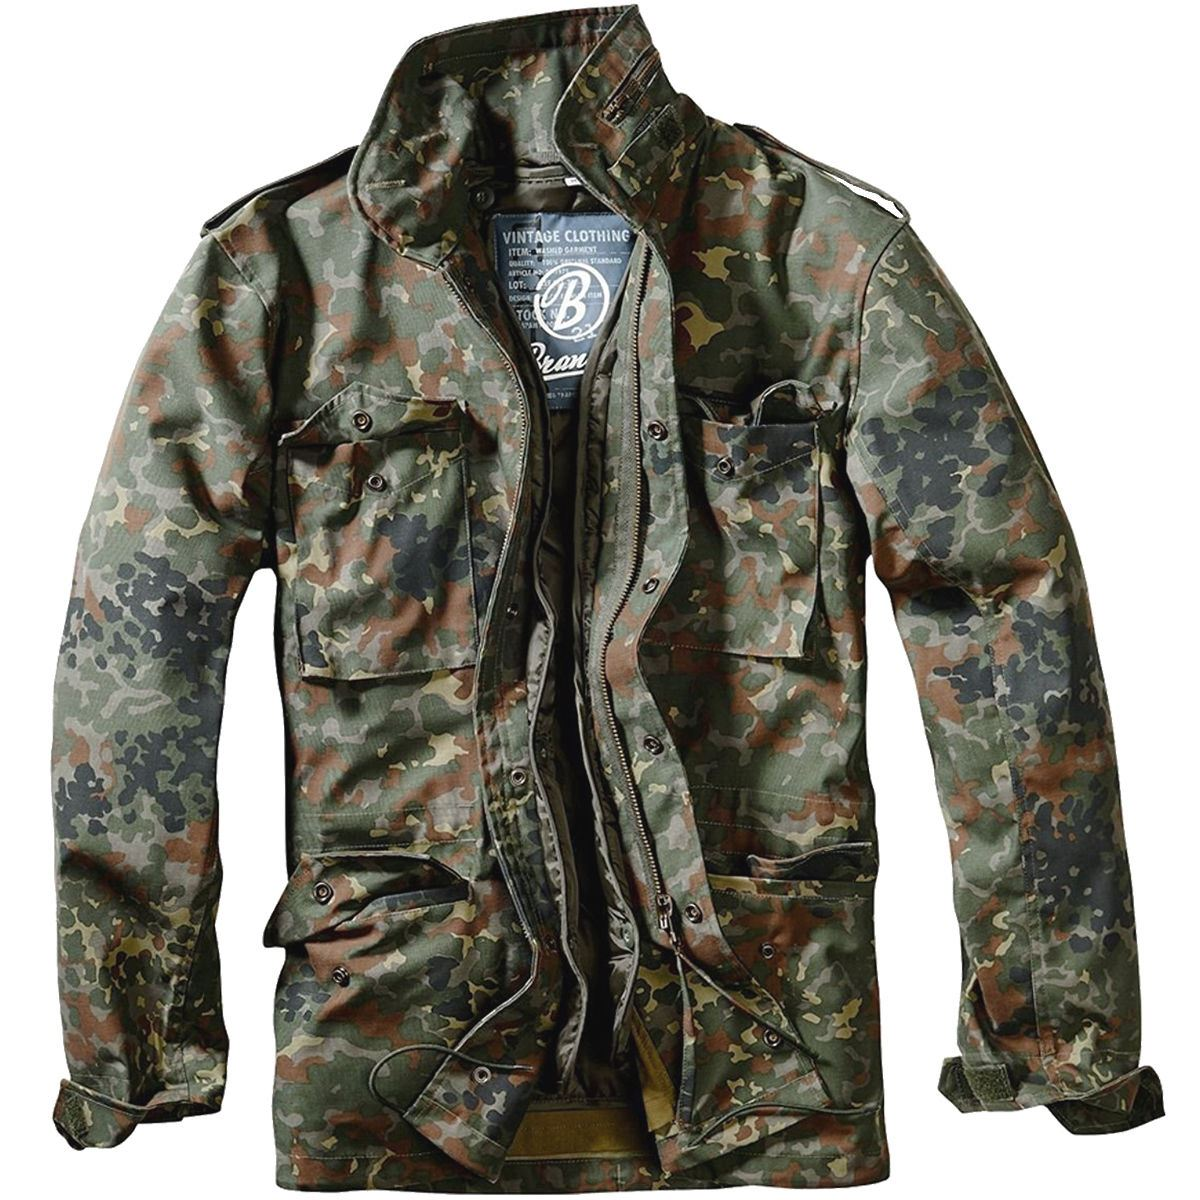 BRANDIT-M65-JACKET-QUILTED-LINER-MENS-MILITARY-ARMY-TACTICAL-COMBAT-FIELD-COAT thumbnail 5